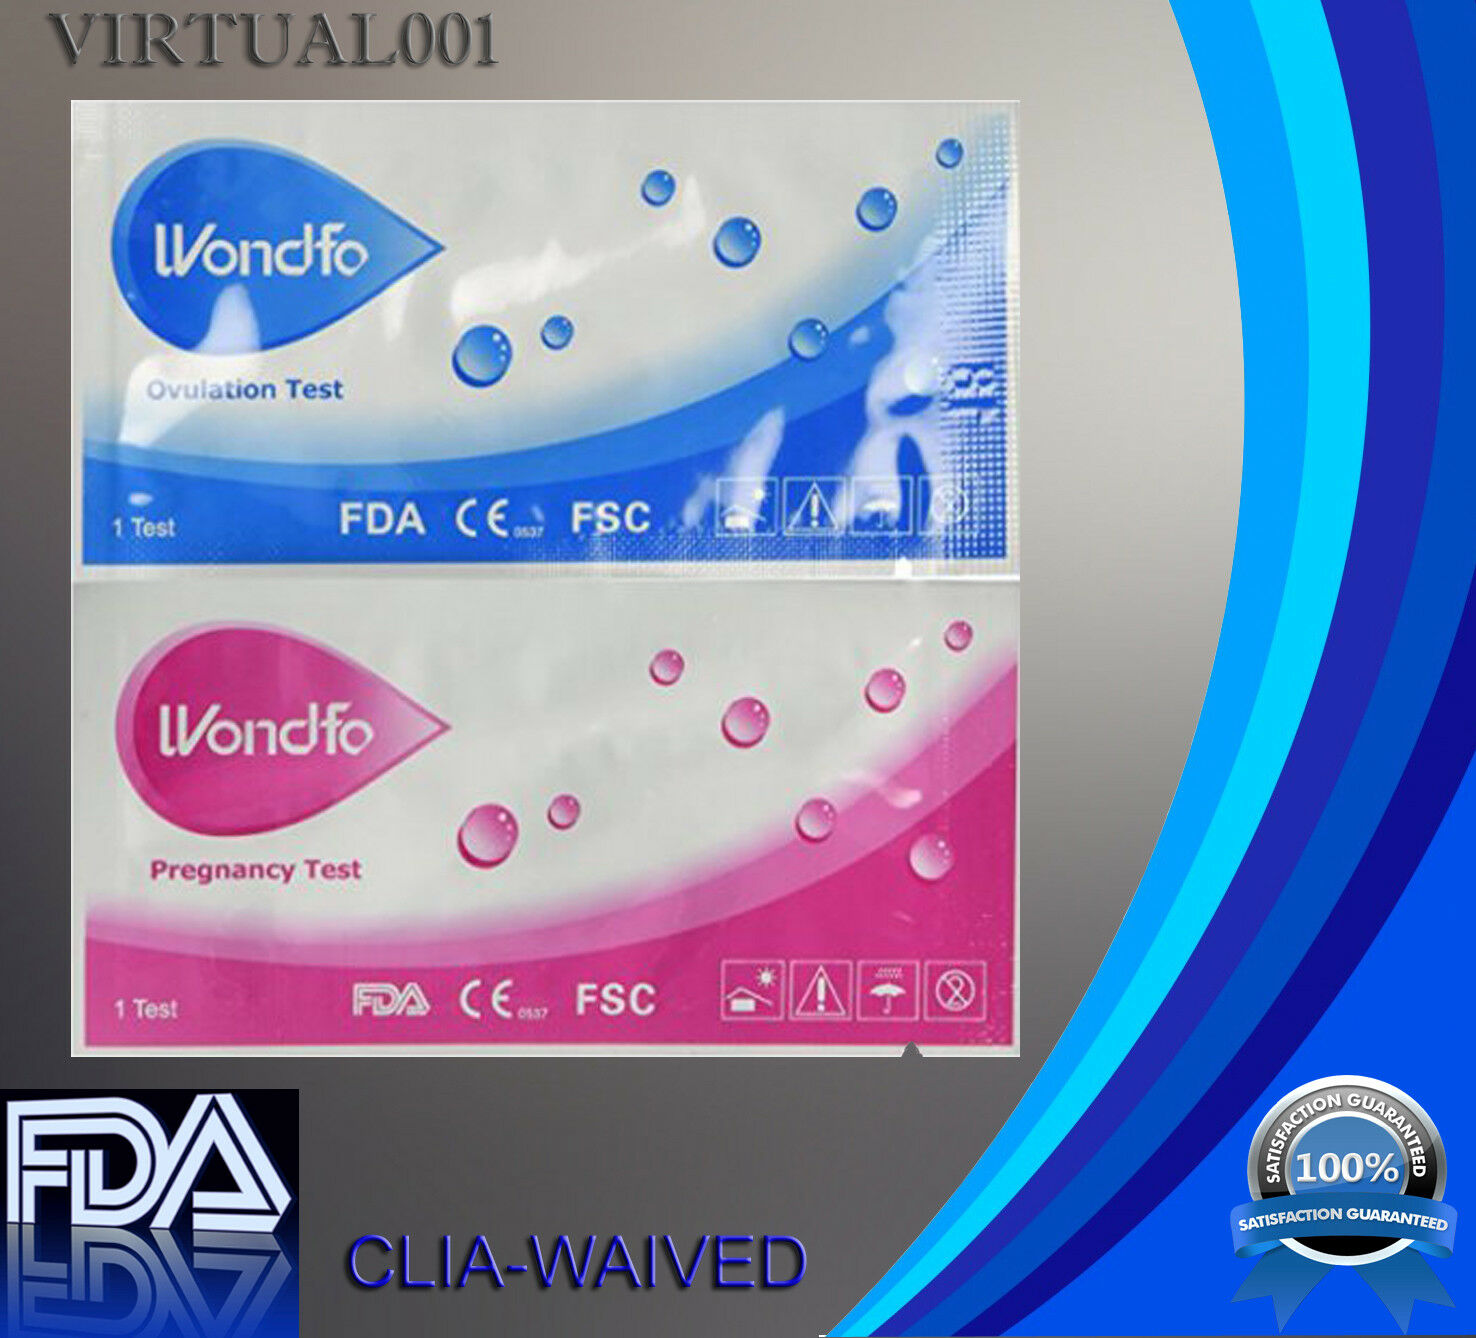 WONDFO 40 ovulation and 10 pregnancy  test strips